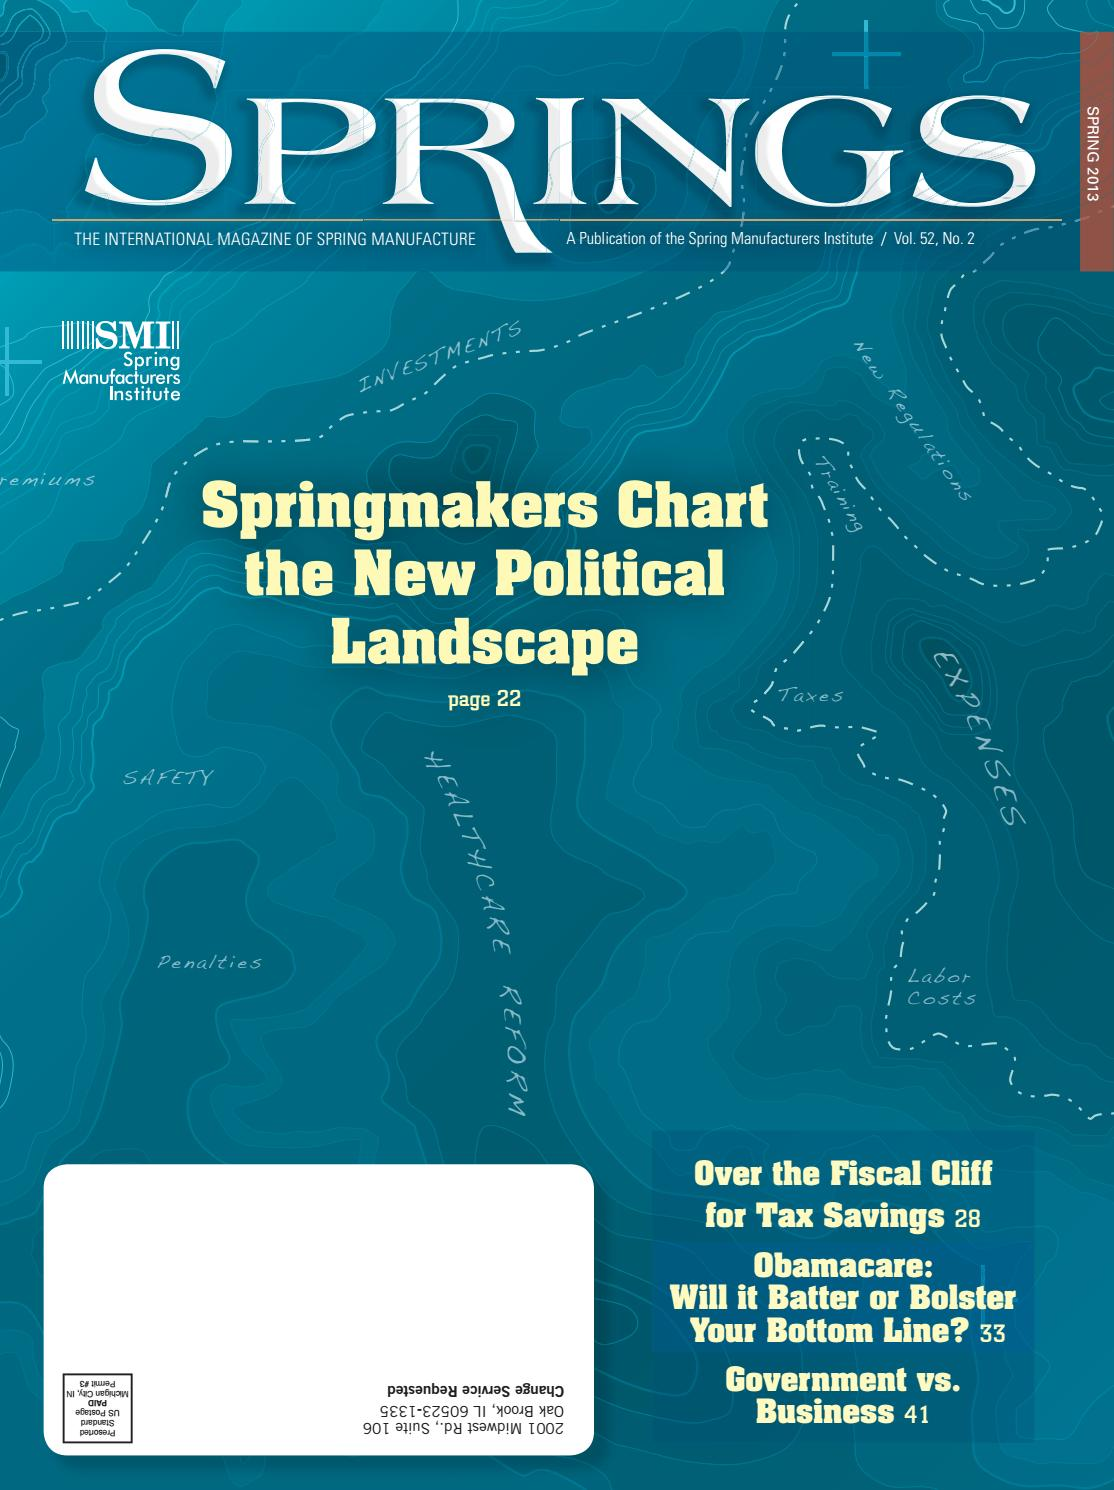 Springs spring 2013 vol 52 no2 by Spring Manufacturers Institute - issuu